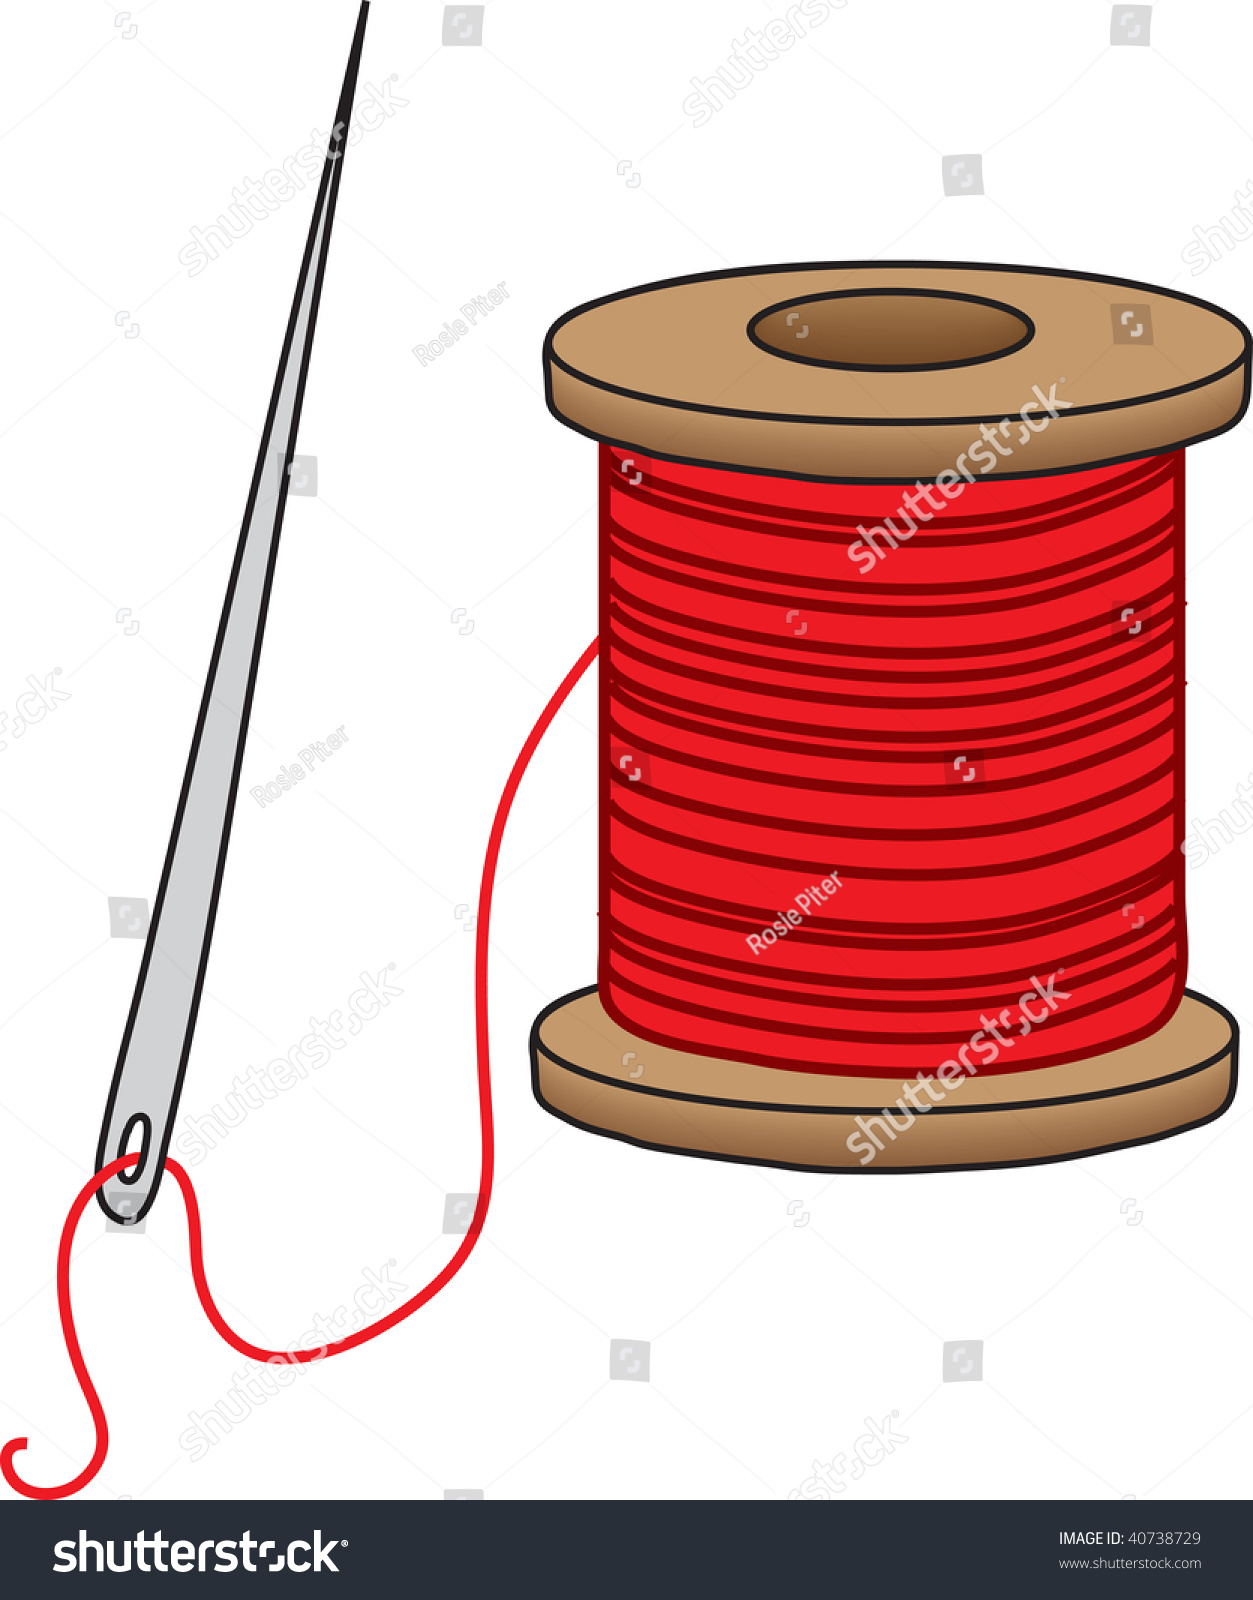 Spool of thread clipart 7 » Clipart Station.